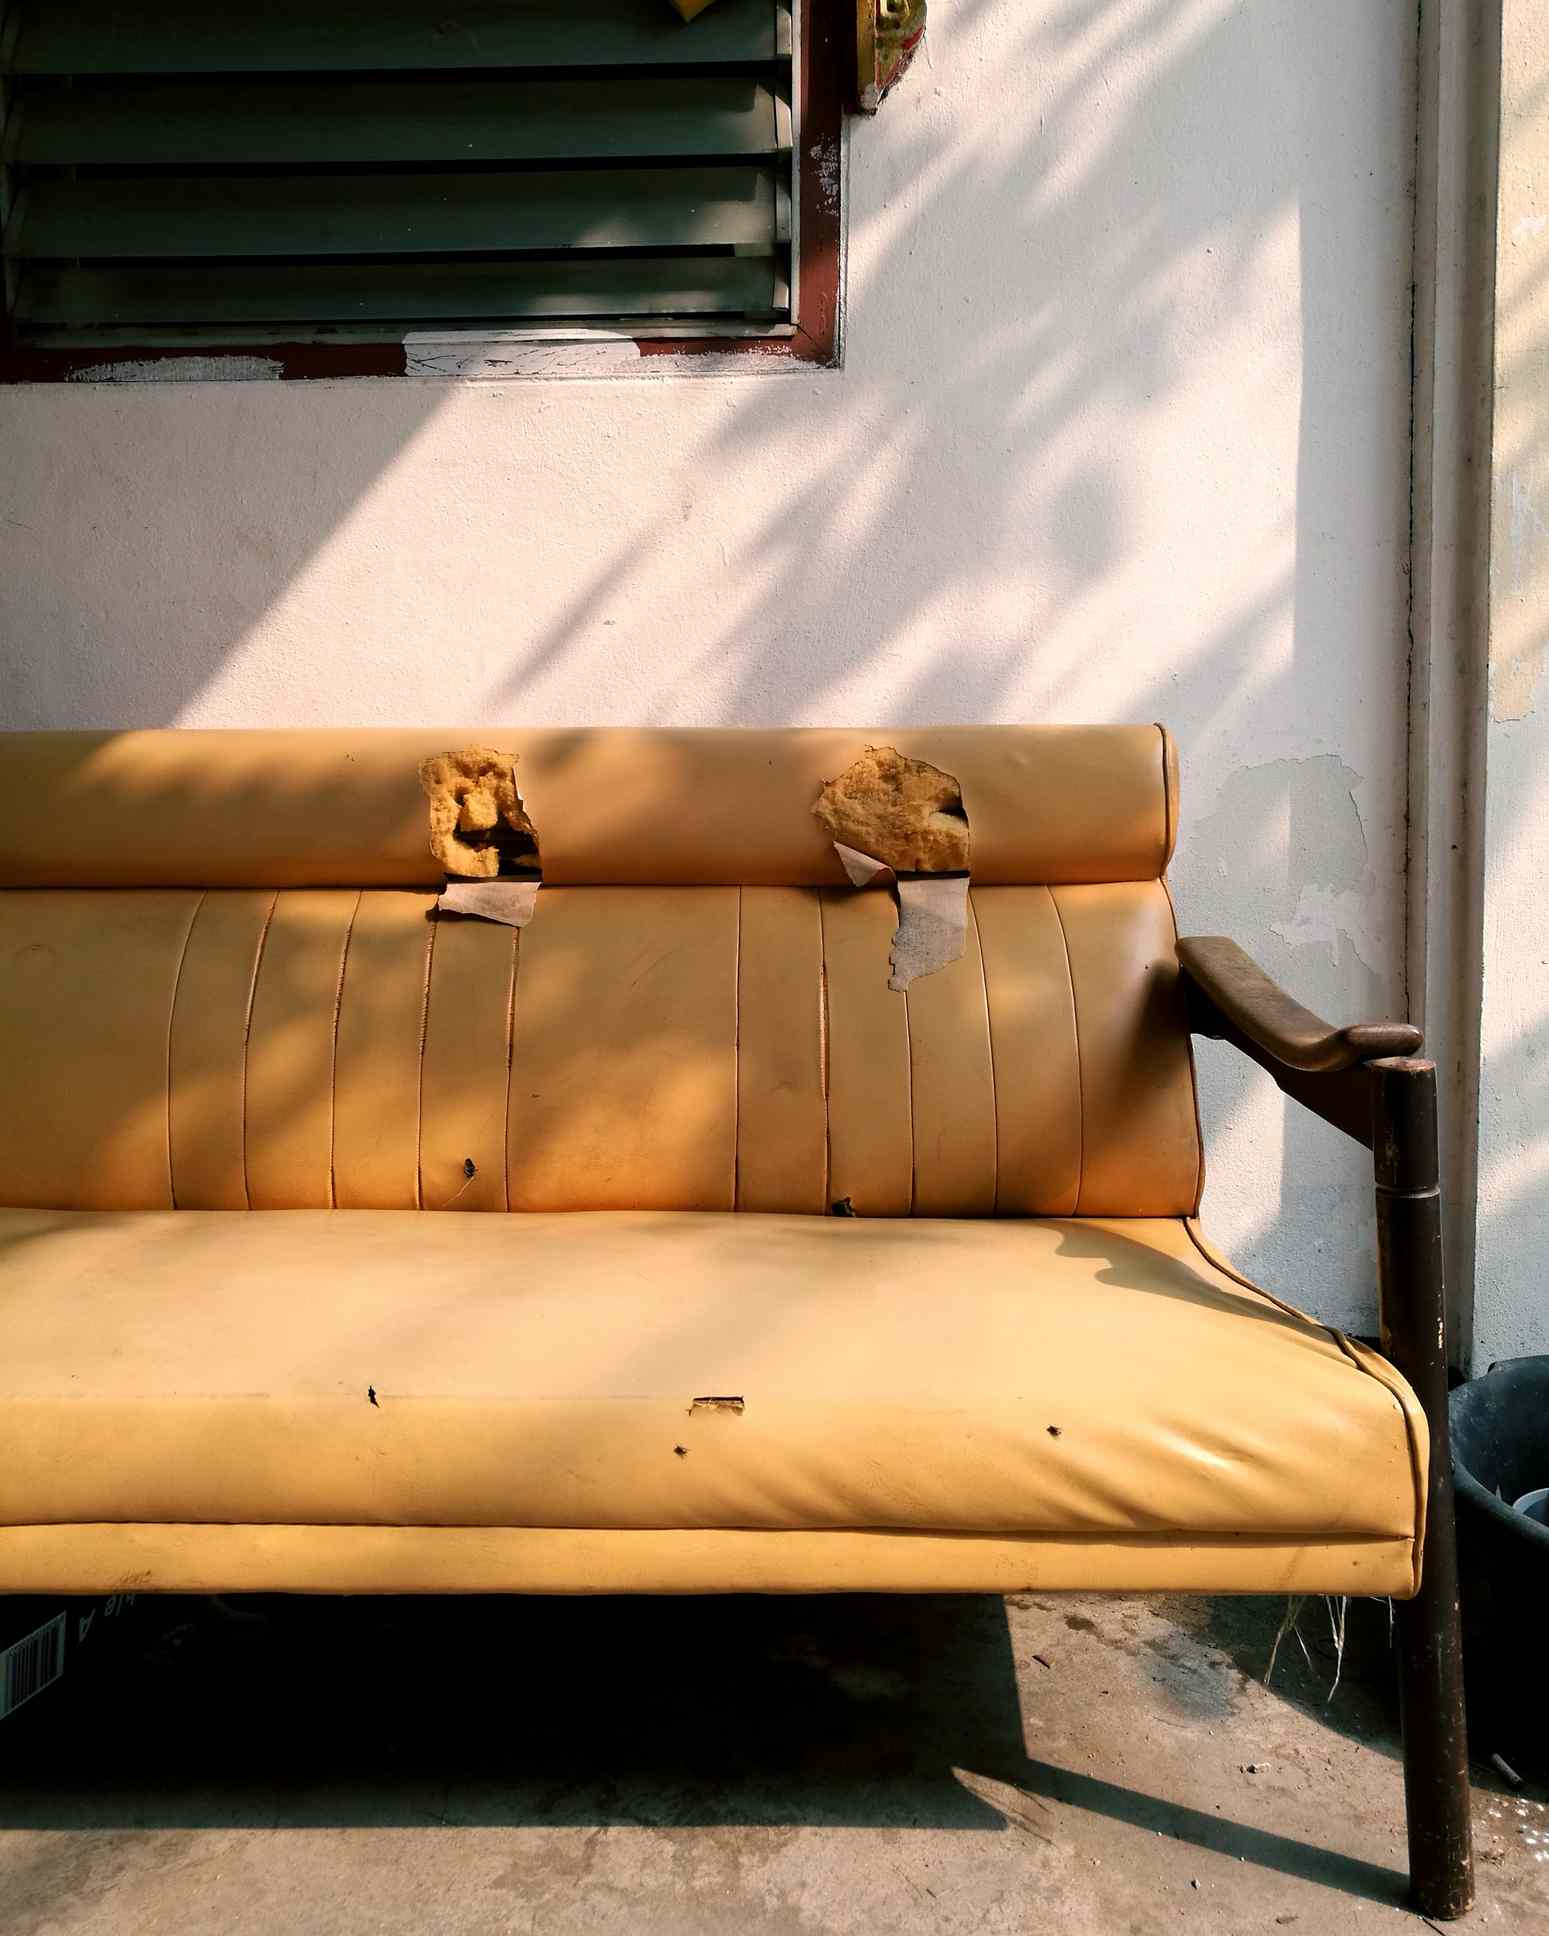 Ripped up couch